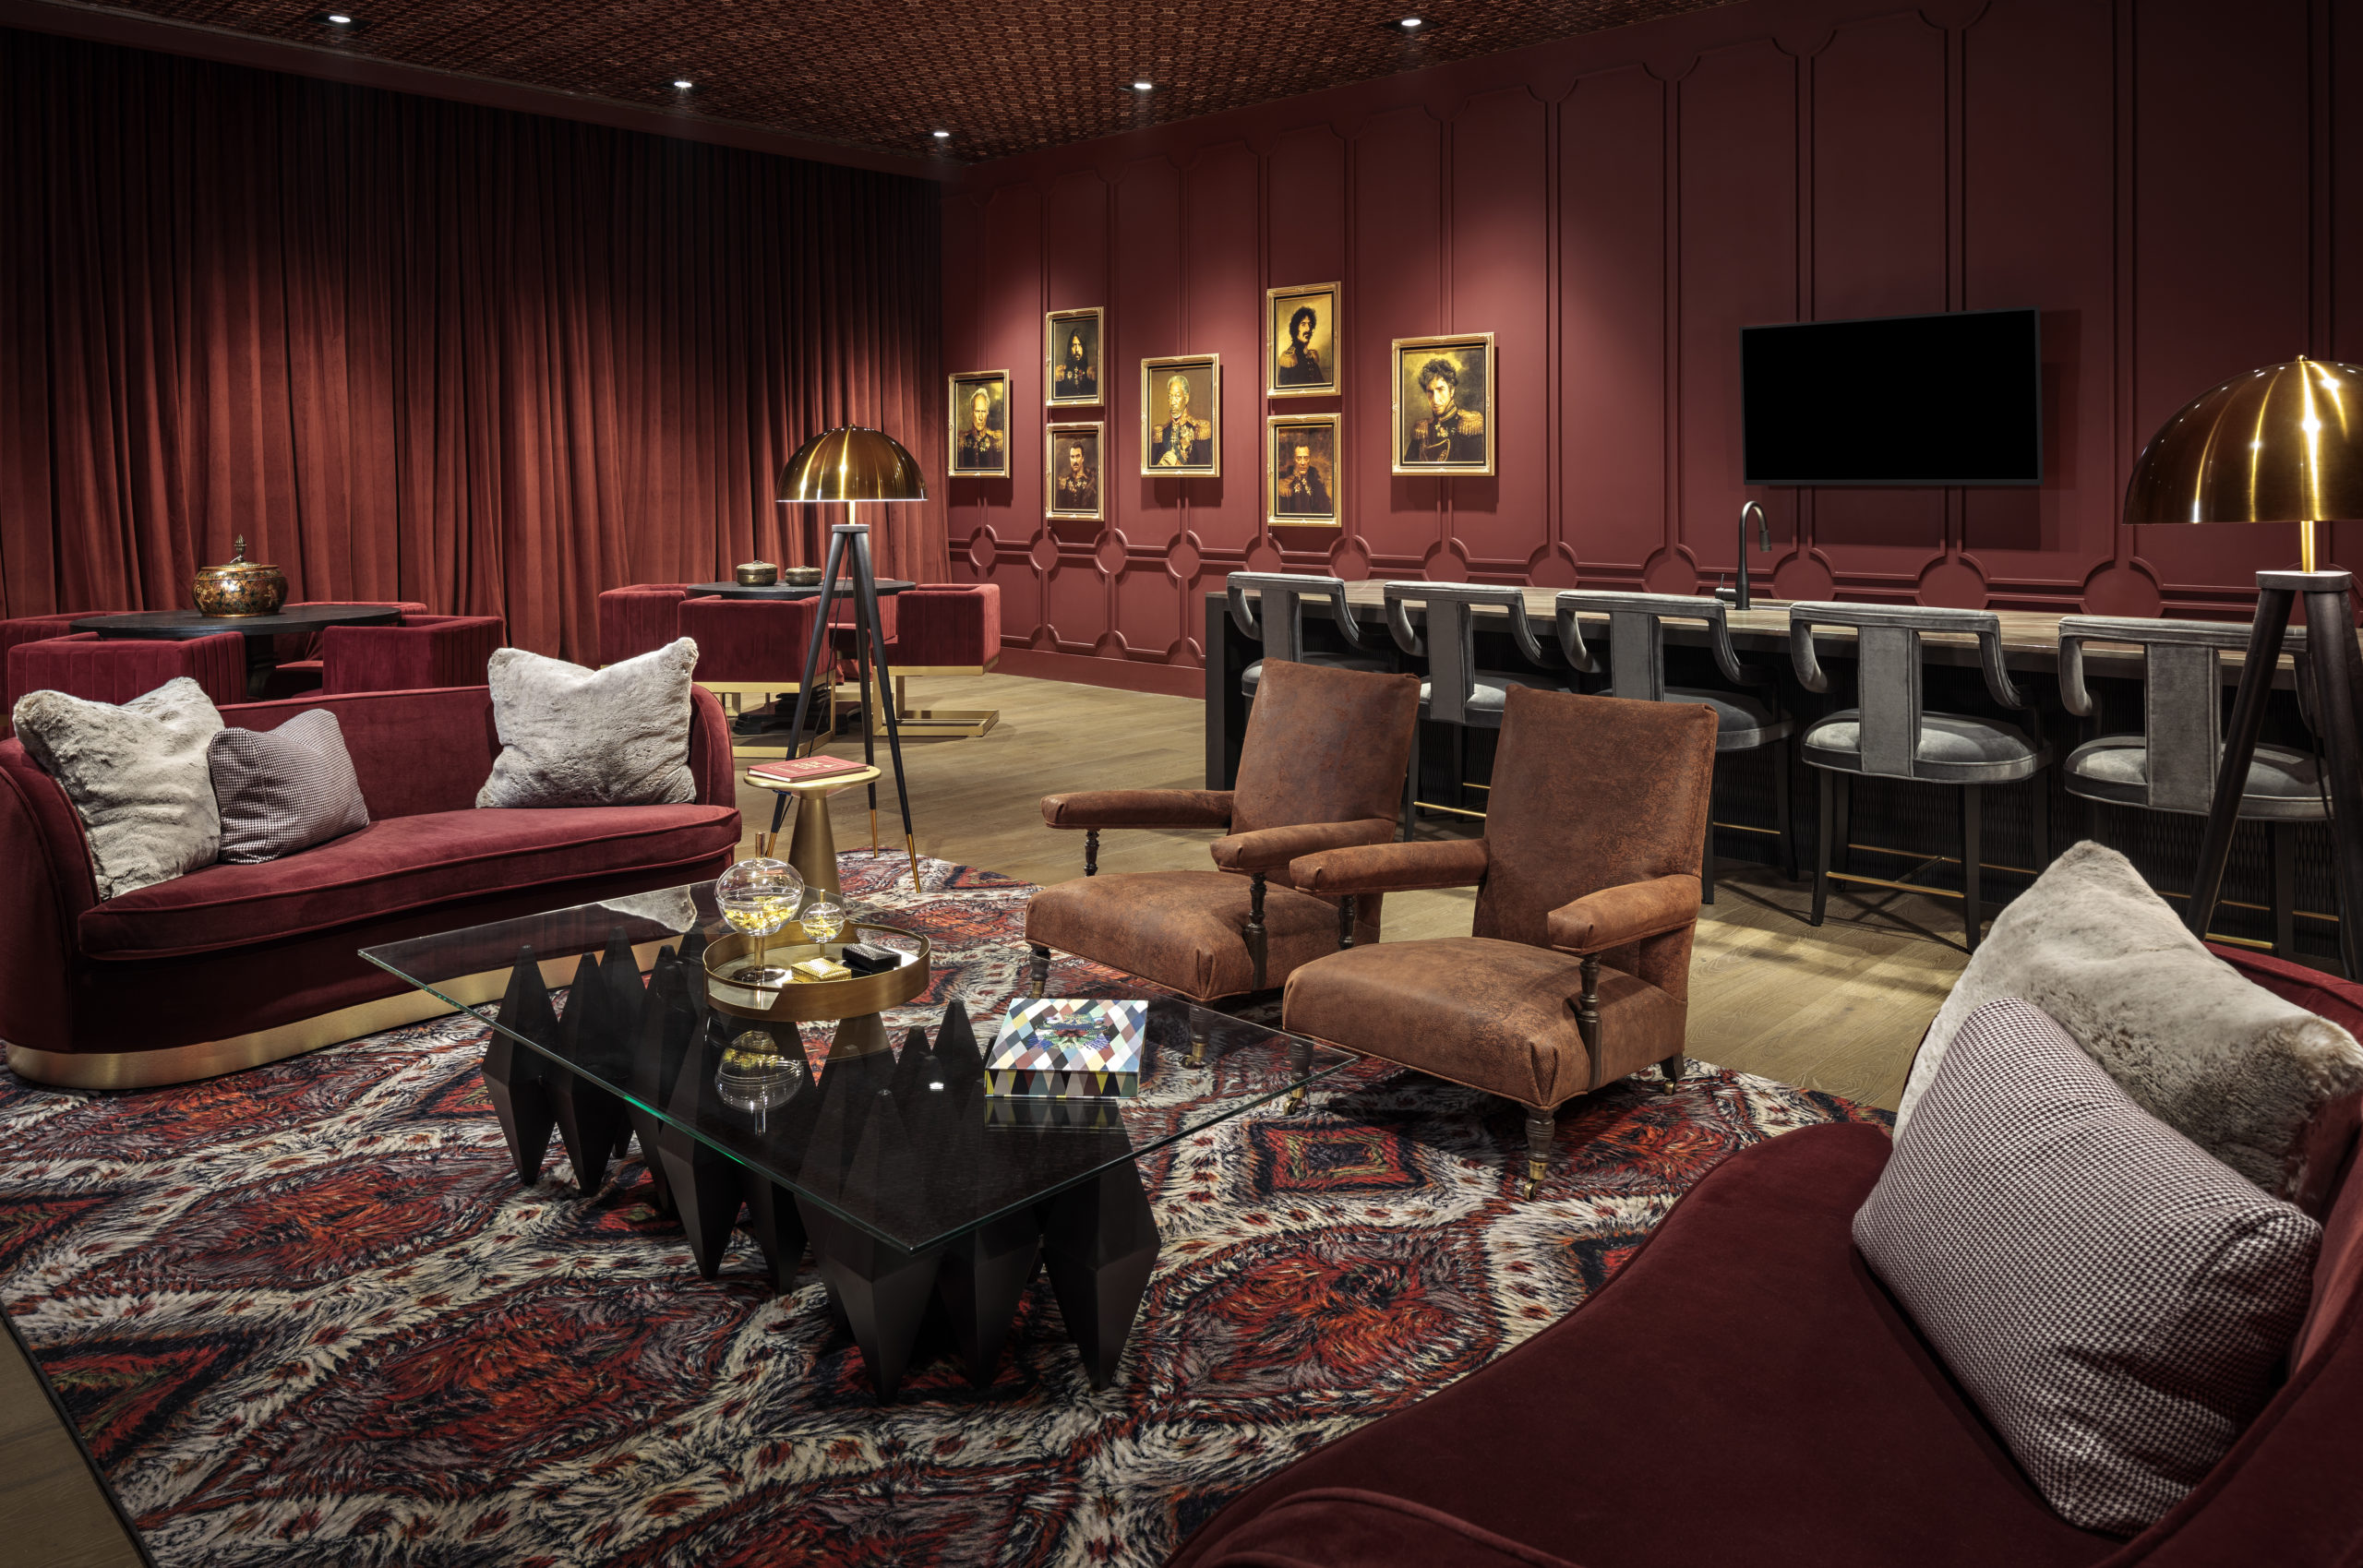 resident clubroom with red velvet seats and red walls